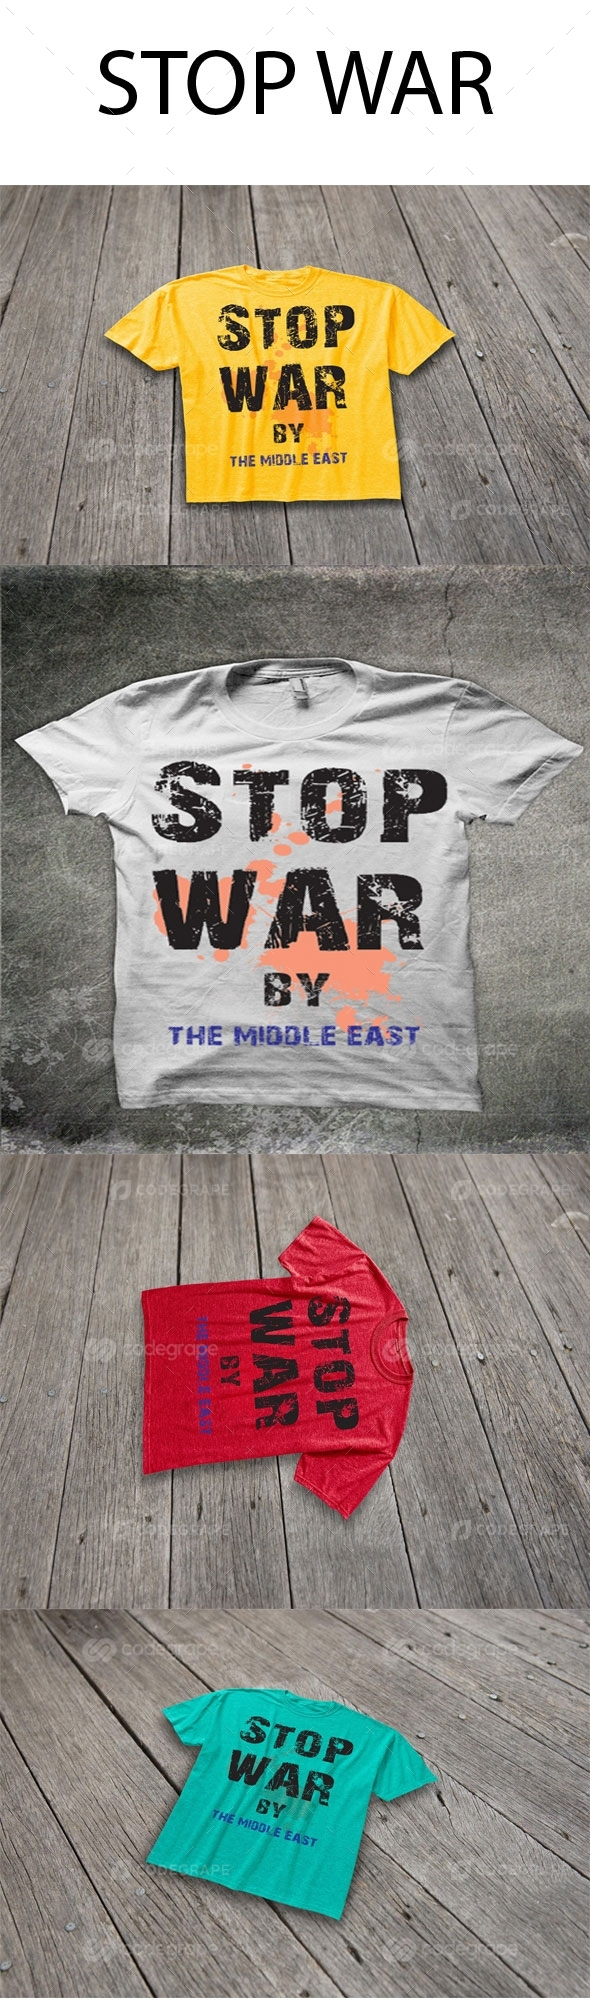 Stop War T-shirt Design